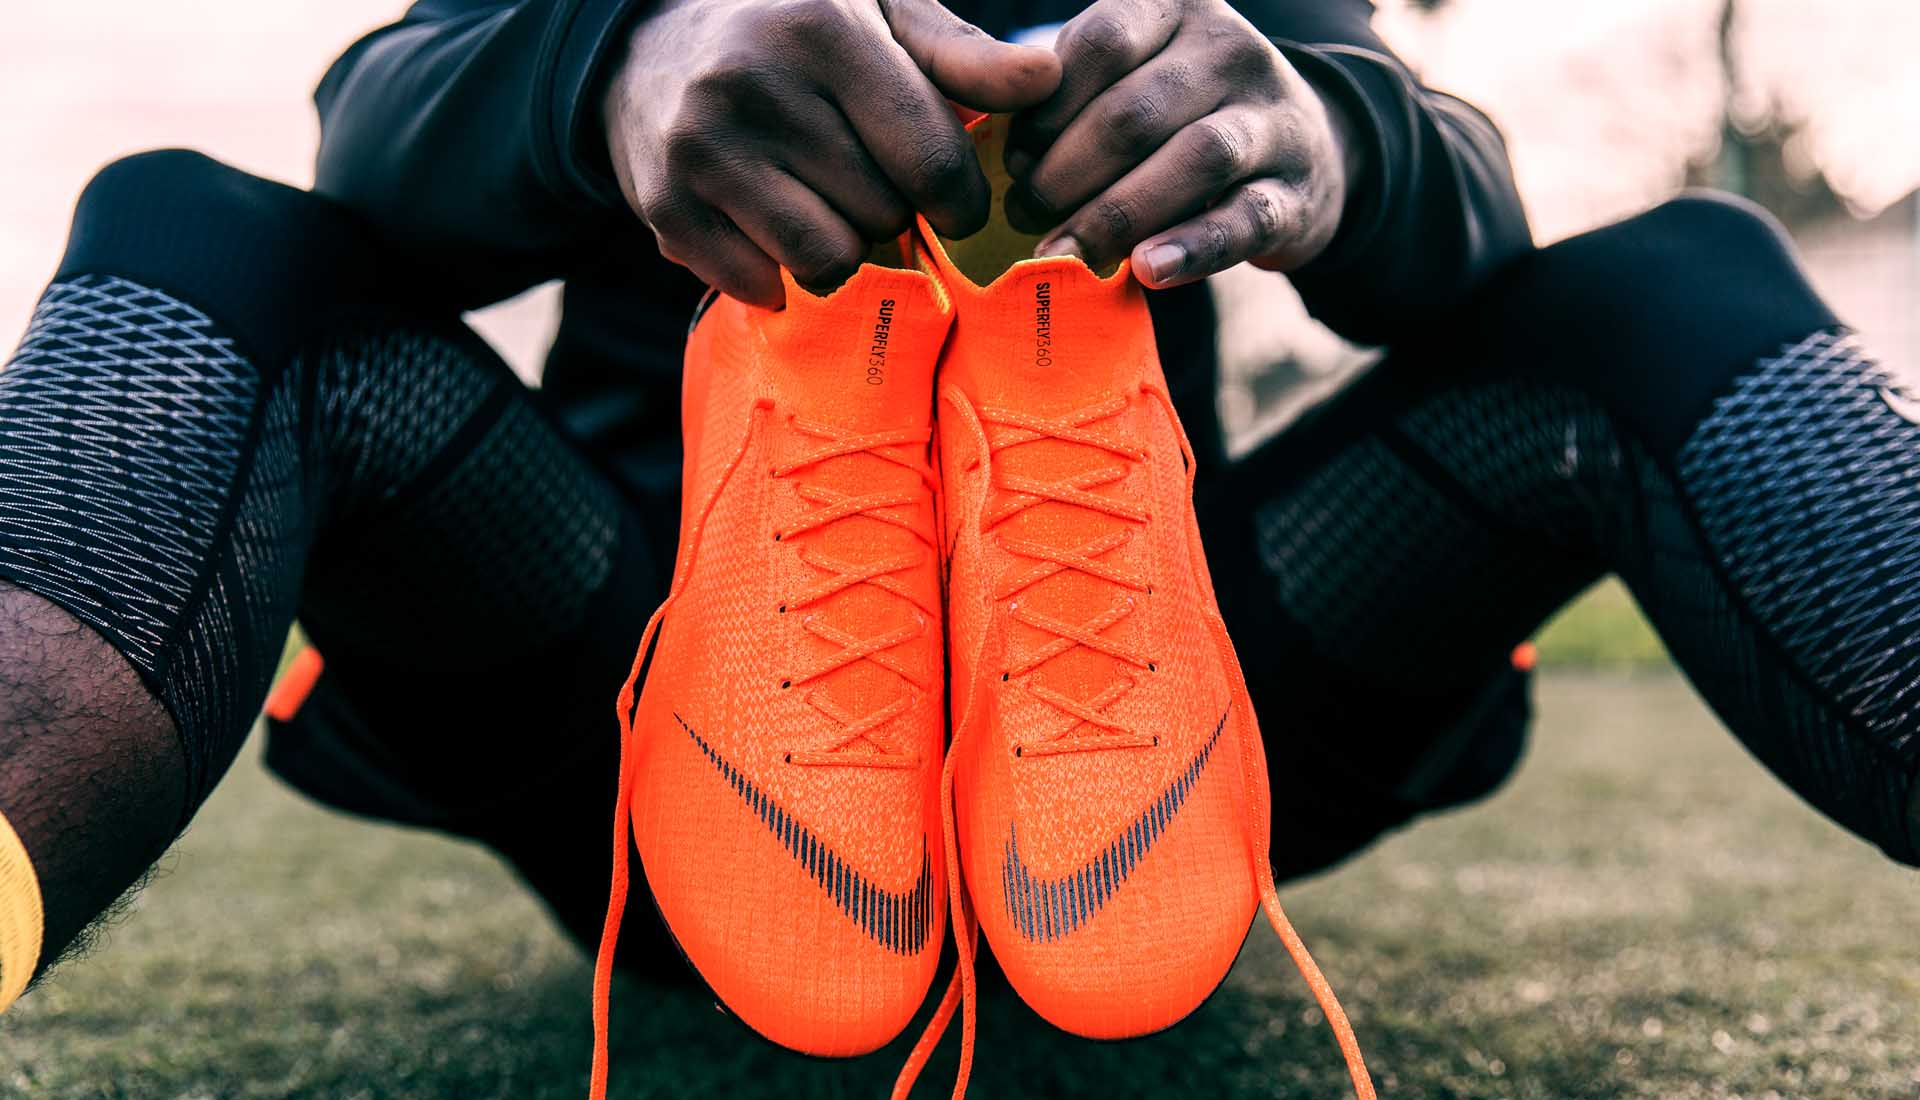 cbefc5f1a32 Laced Up  Nike Mercurial Superfly 360 Review - SoccerBible